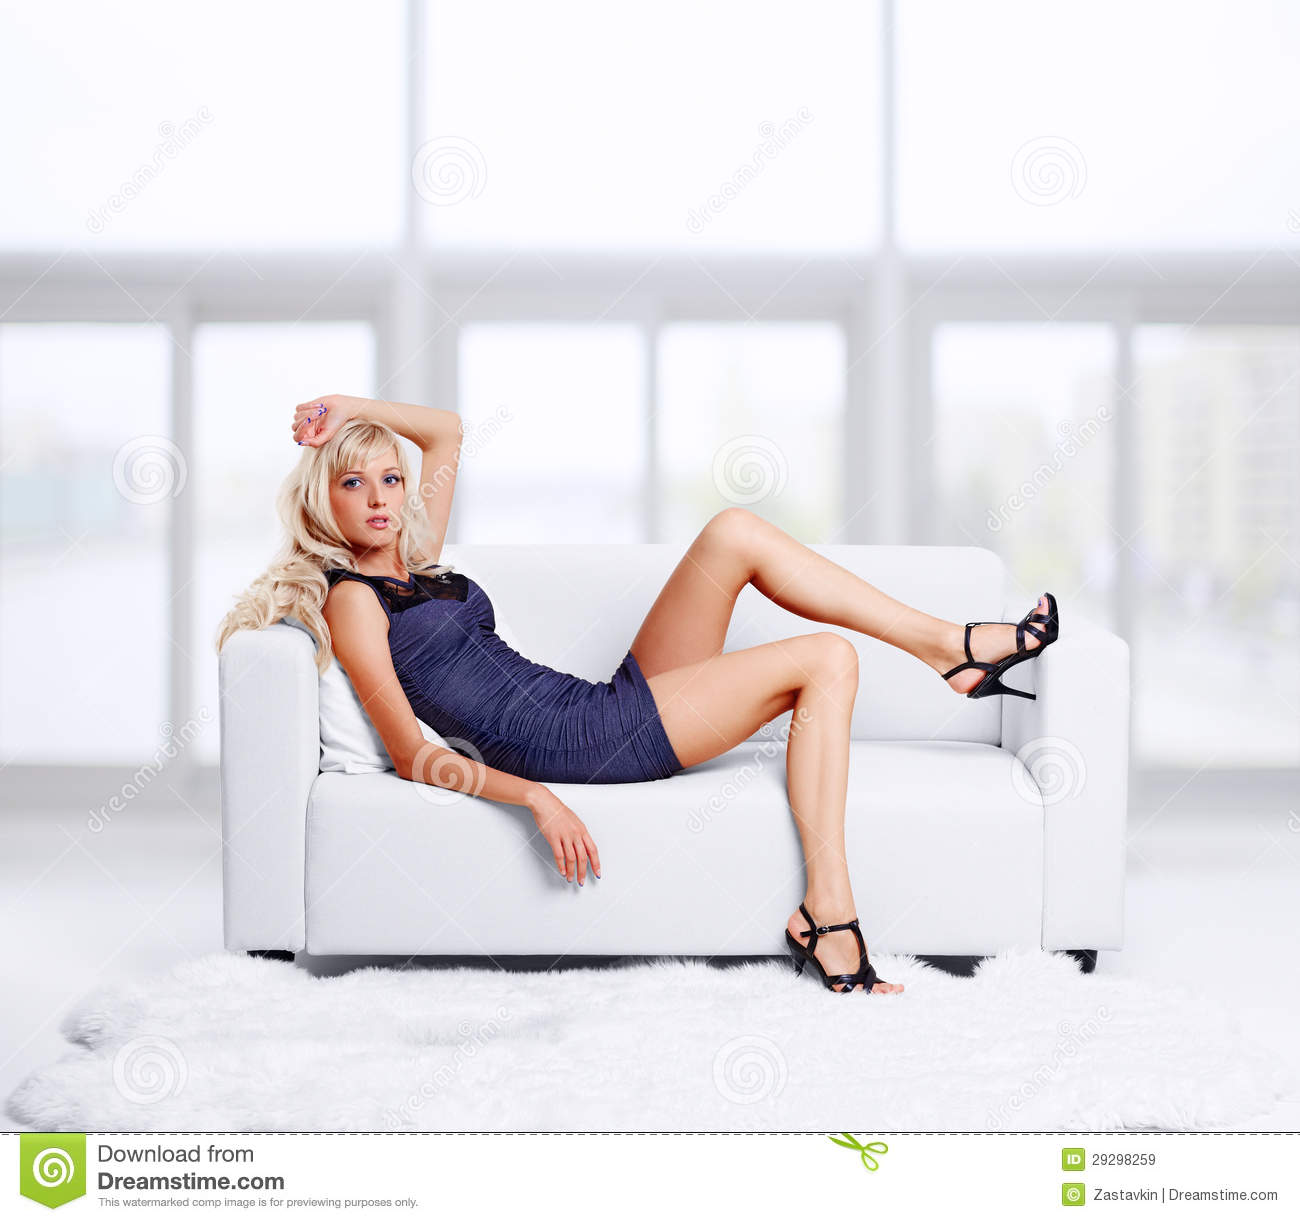 Free Sexmovie Blond Sofa Blond Girl On Sofa Royalty Free Stock Images - Image: 29298259